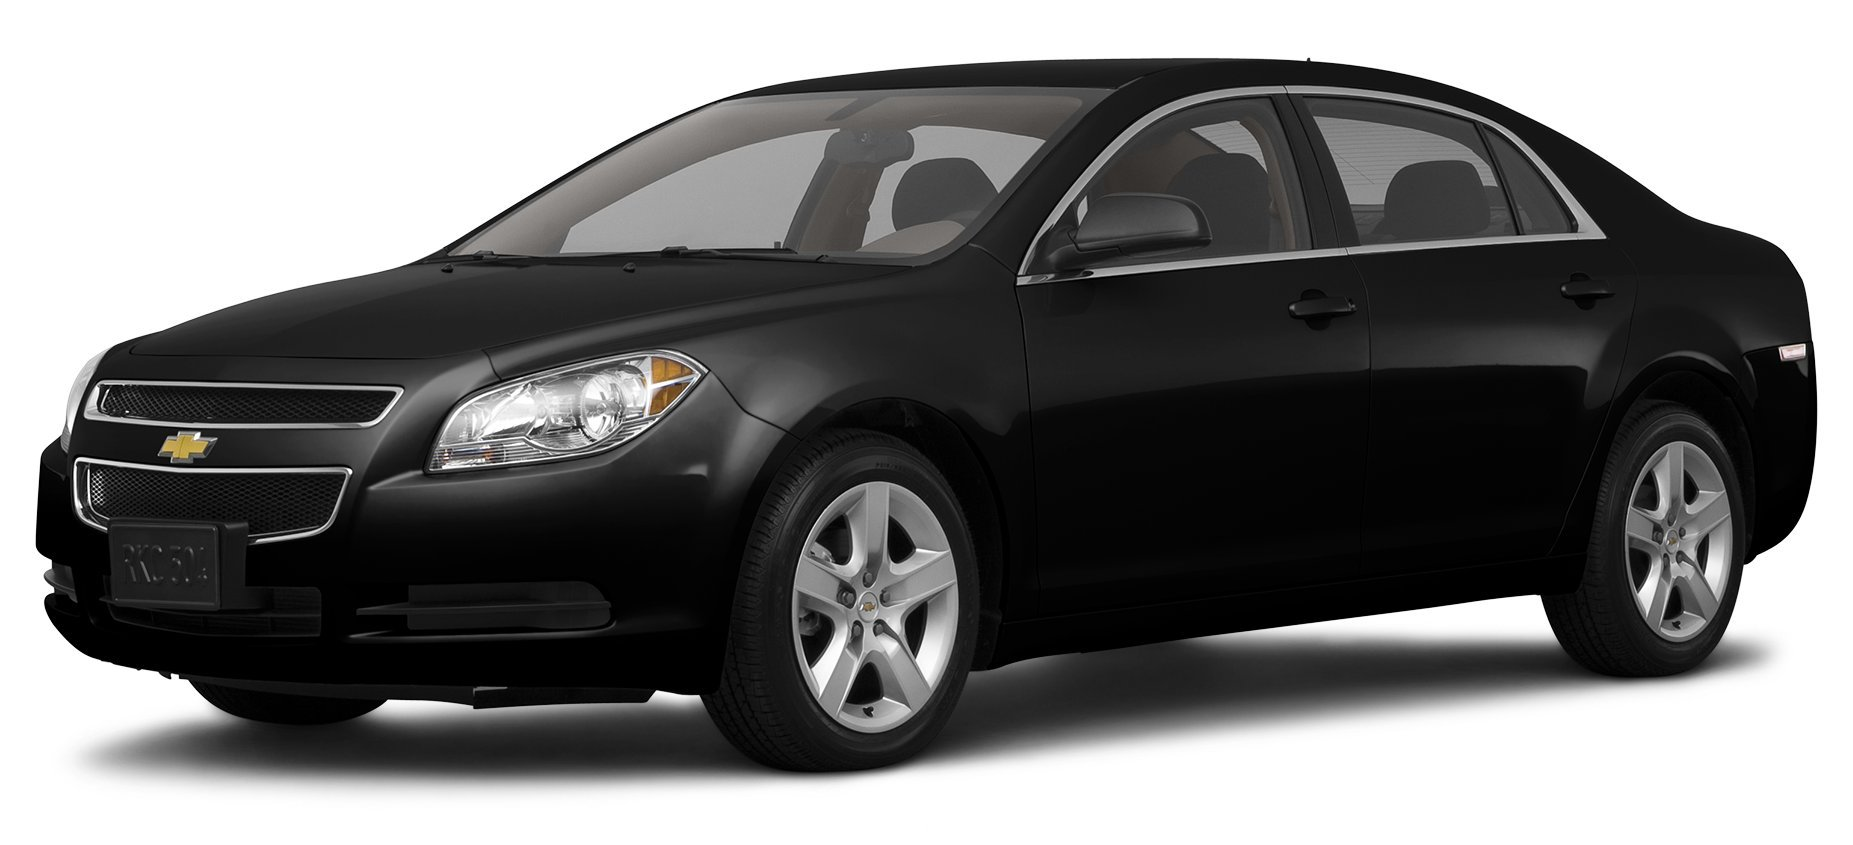 2011 chevrolet malibu reviews images and specs vehicles. Black Bedroom Furniture Sets. Home Design Ideas